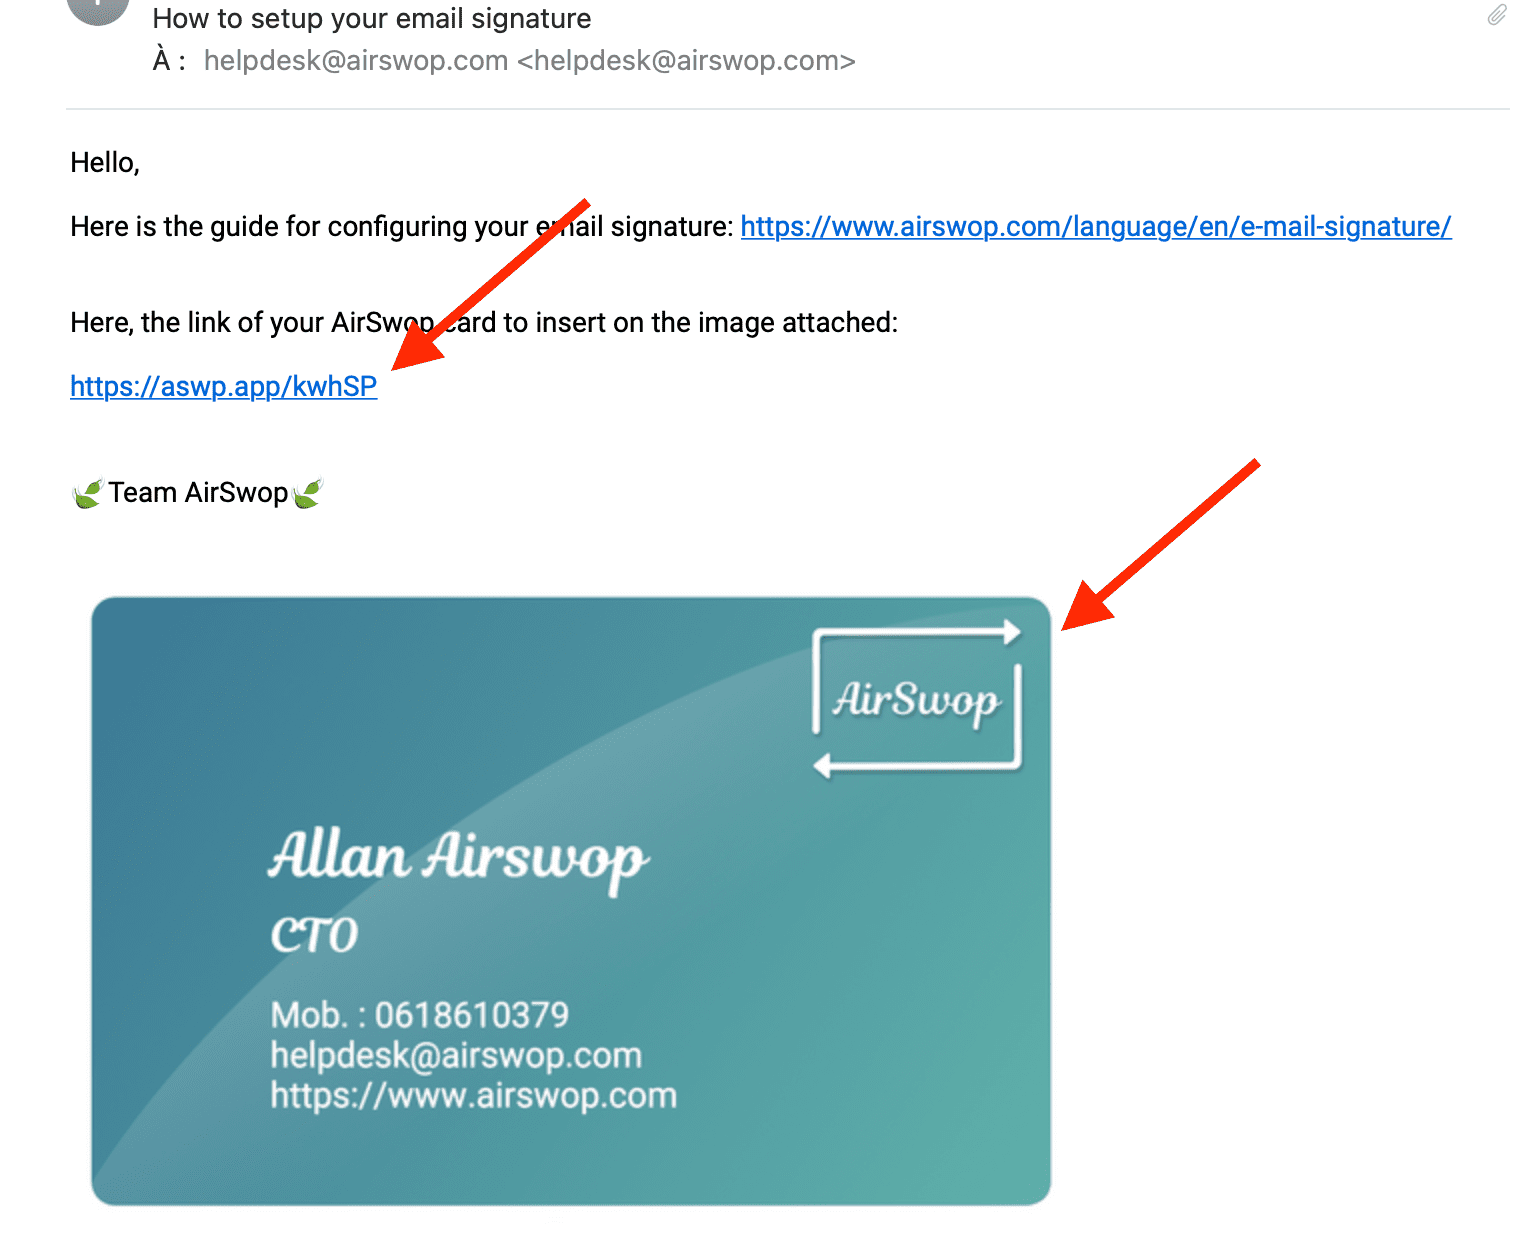 mail with card image and AirSwop card link